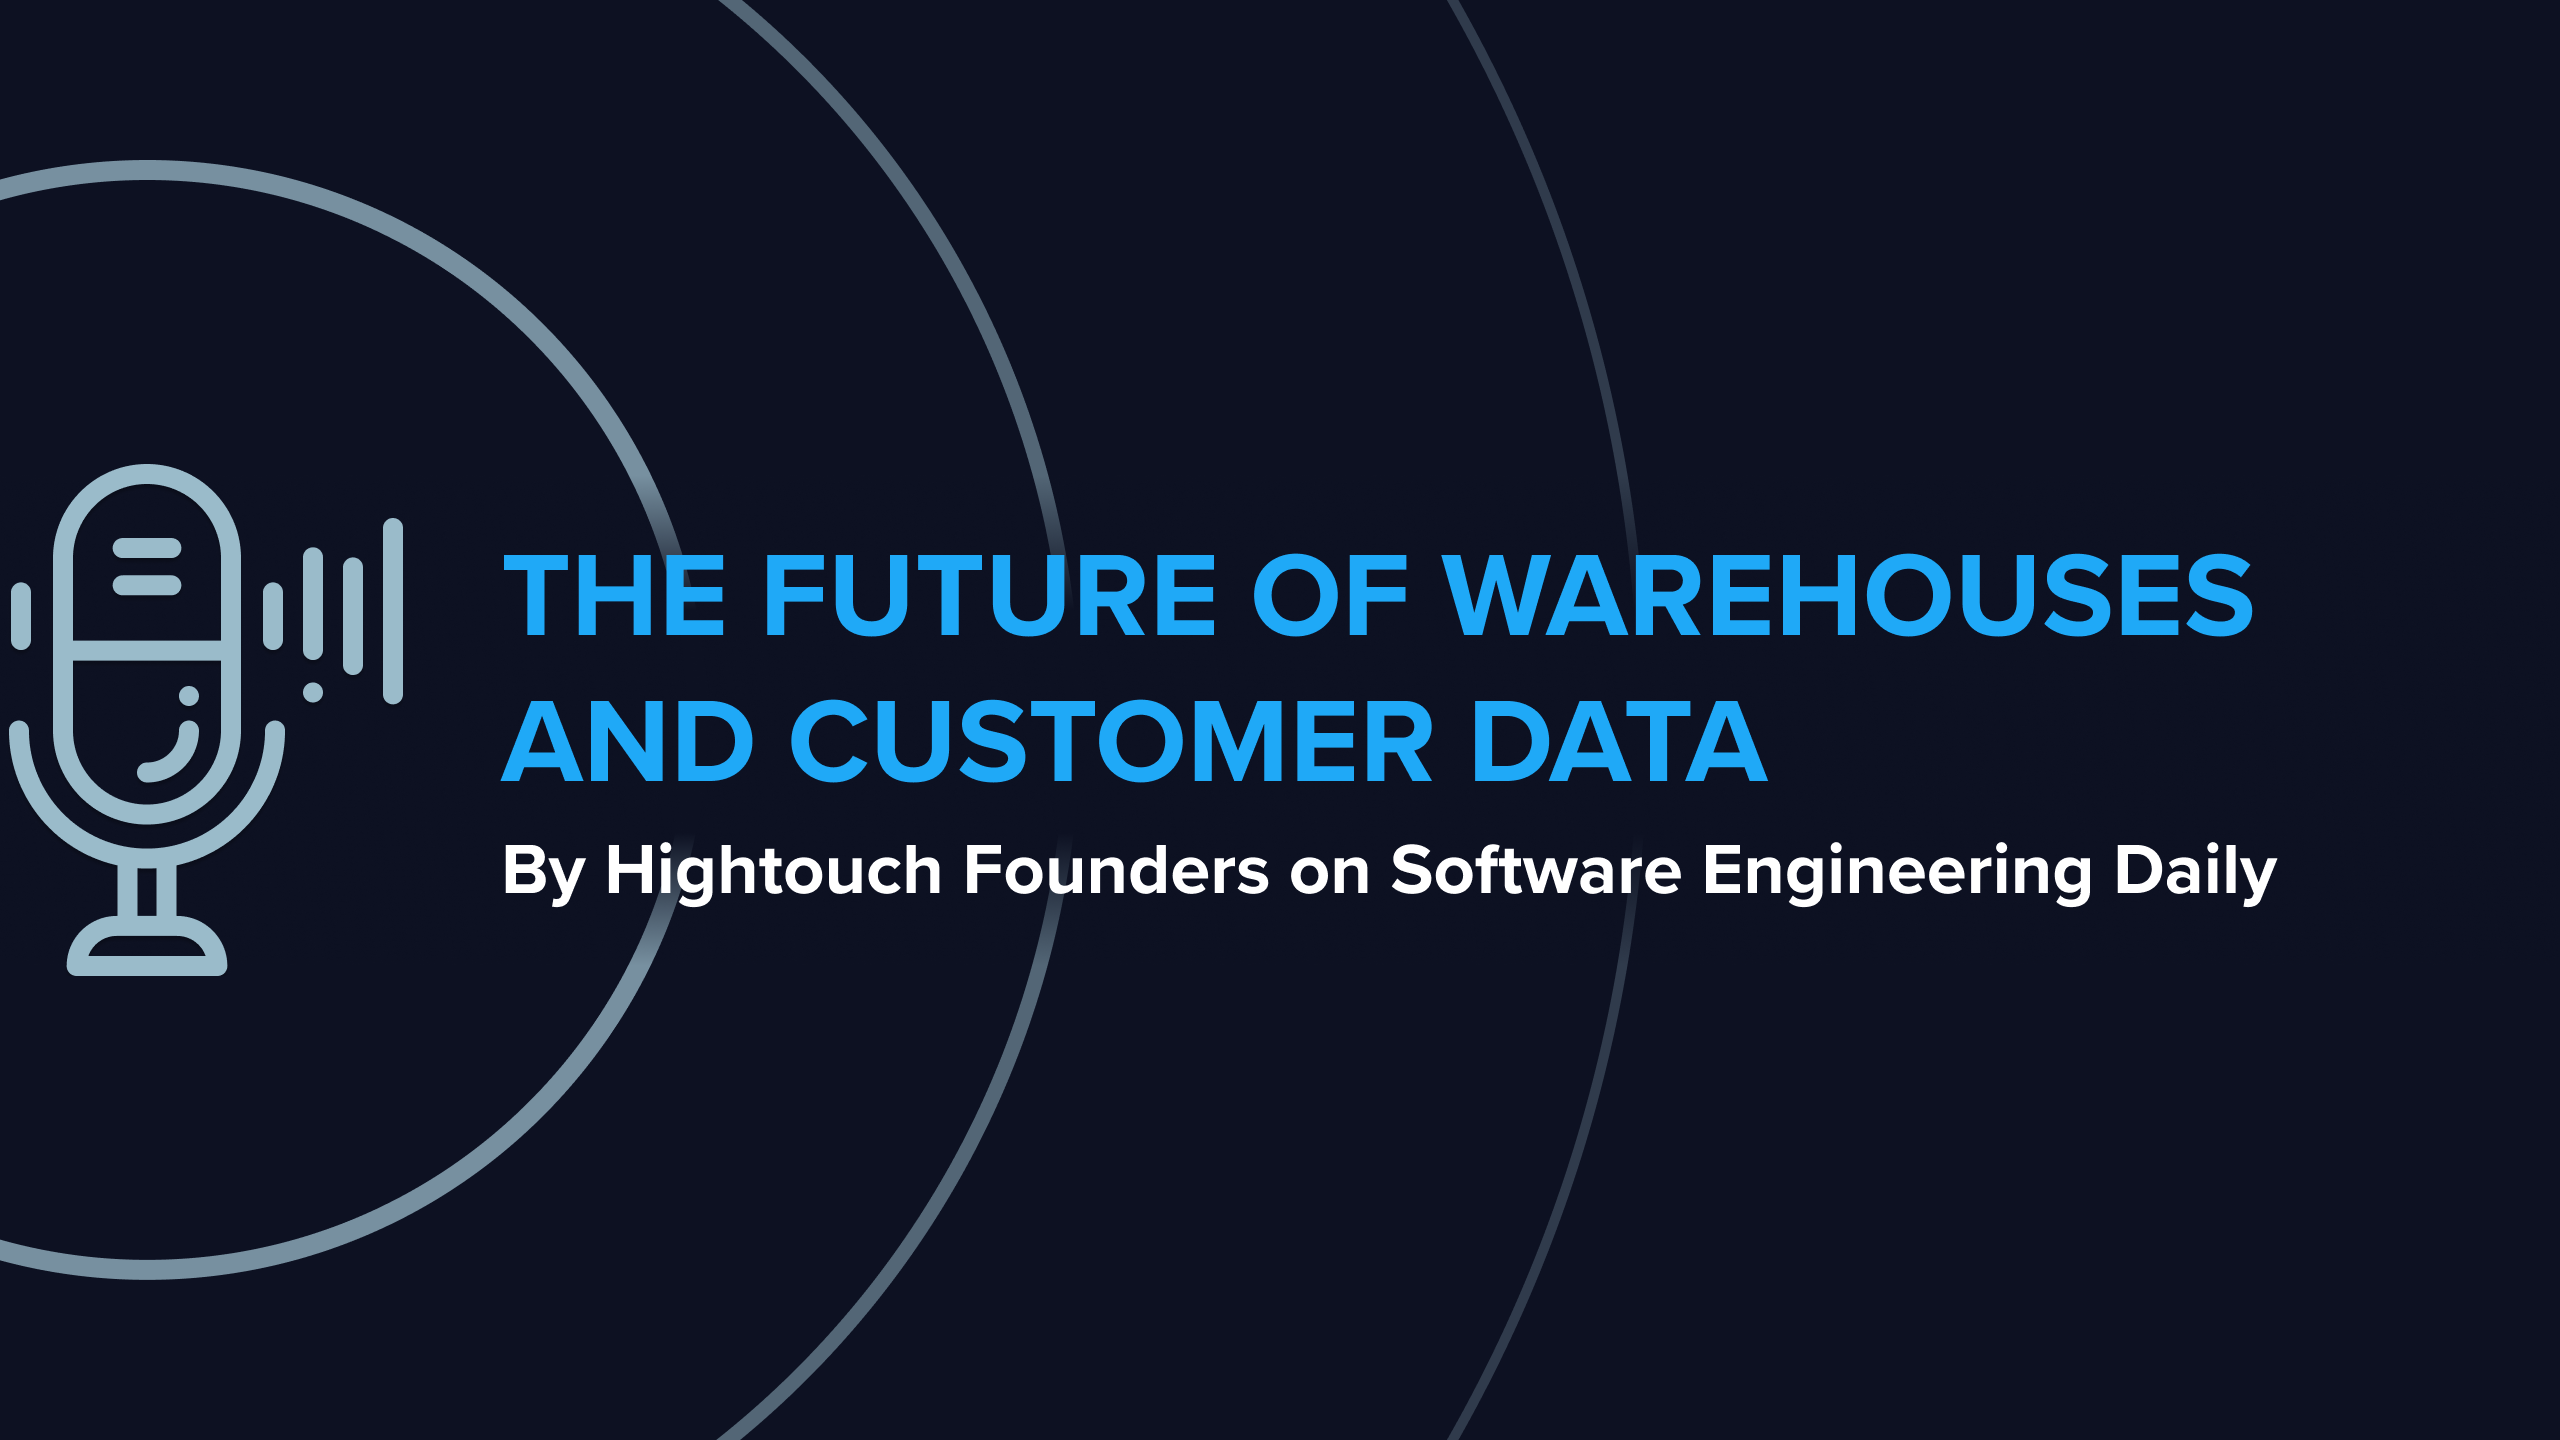 The Future of Warehouses and Customer Data - Software Engineering Daily